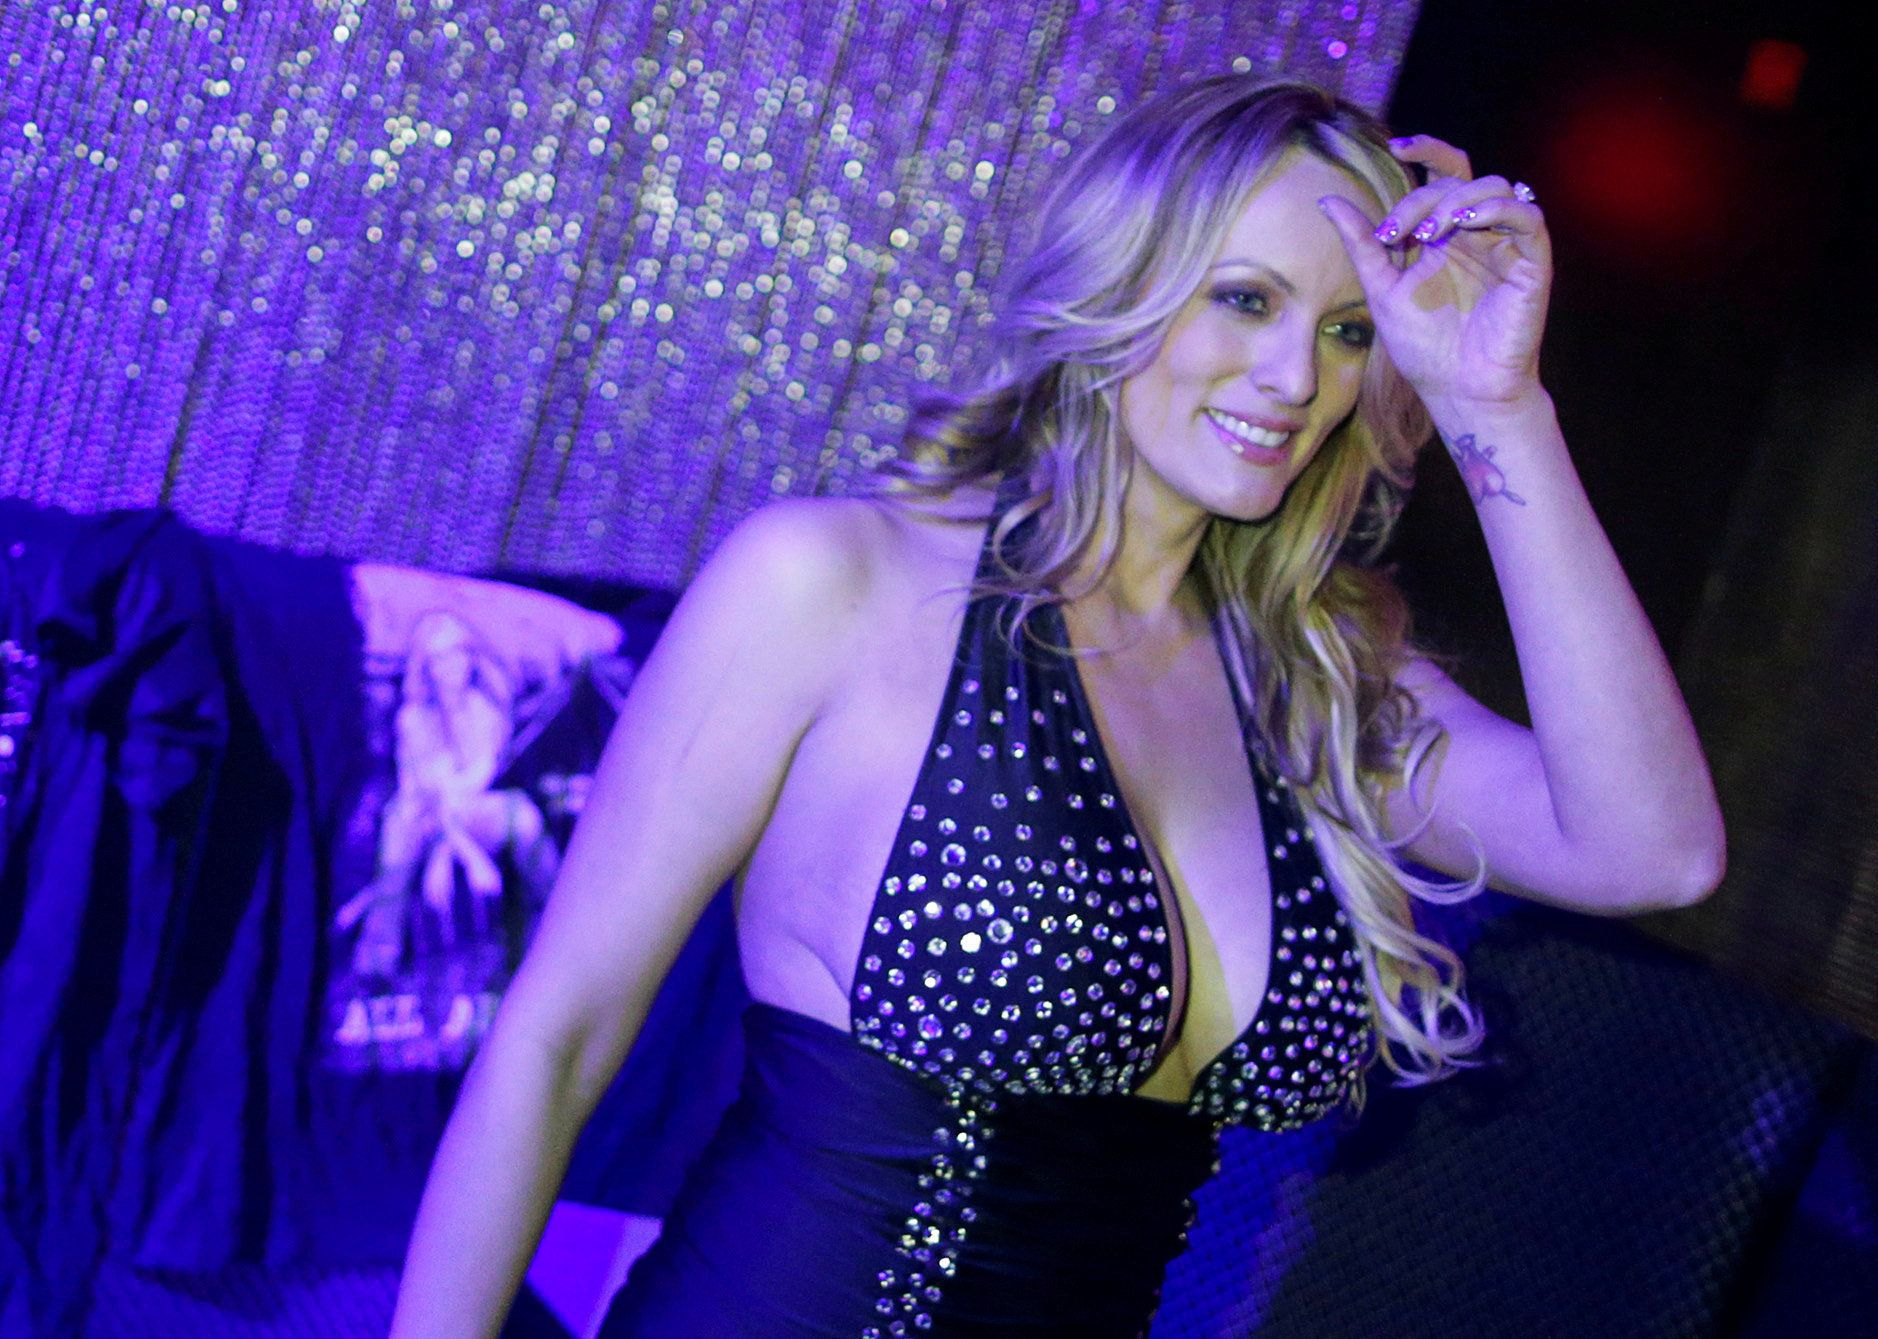 Adult-film actress Stephanie Clifford, also known as Stormy Daniels, poses for pictures at the end of her striptease show in Gossip Gentleman club in Long Island, New York, U.S., February 23, 2018. REUTERS/Eduardo Munoz - RC1FA1ED9330